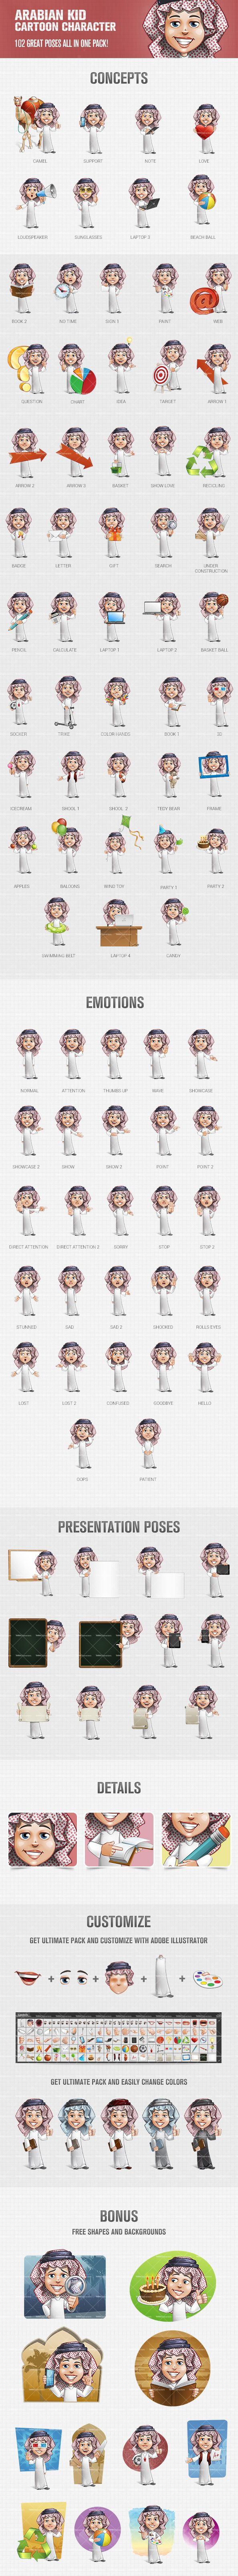 Arabian kid cartoon character pack made in 92 different poses and moods. Use this delightful toon in any of your projects. We guarantee it will make a good and lasting impression on people. Continue reading →